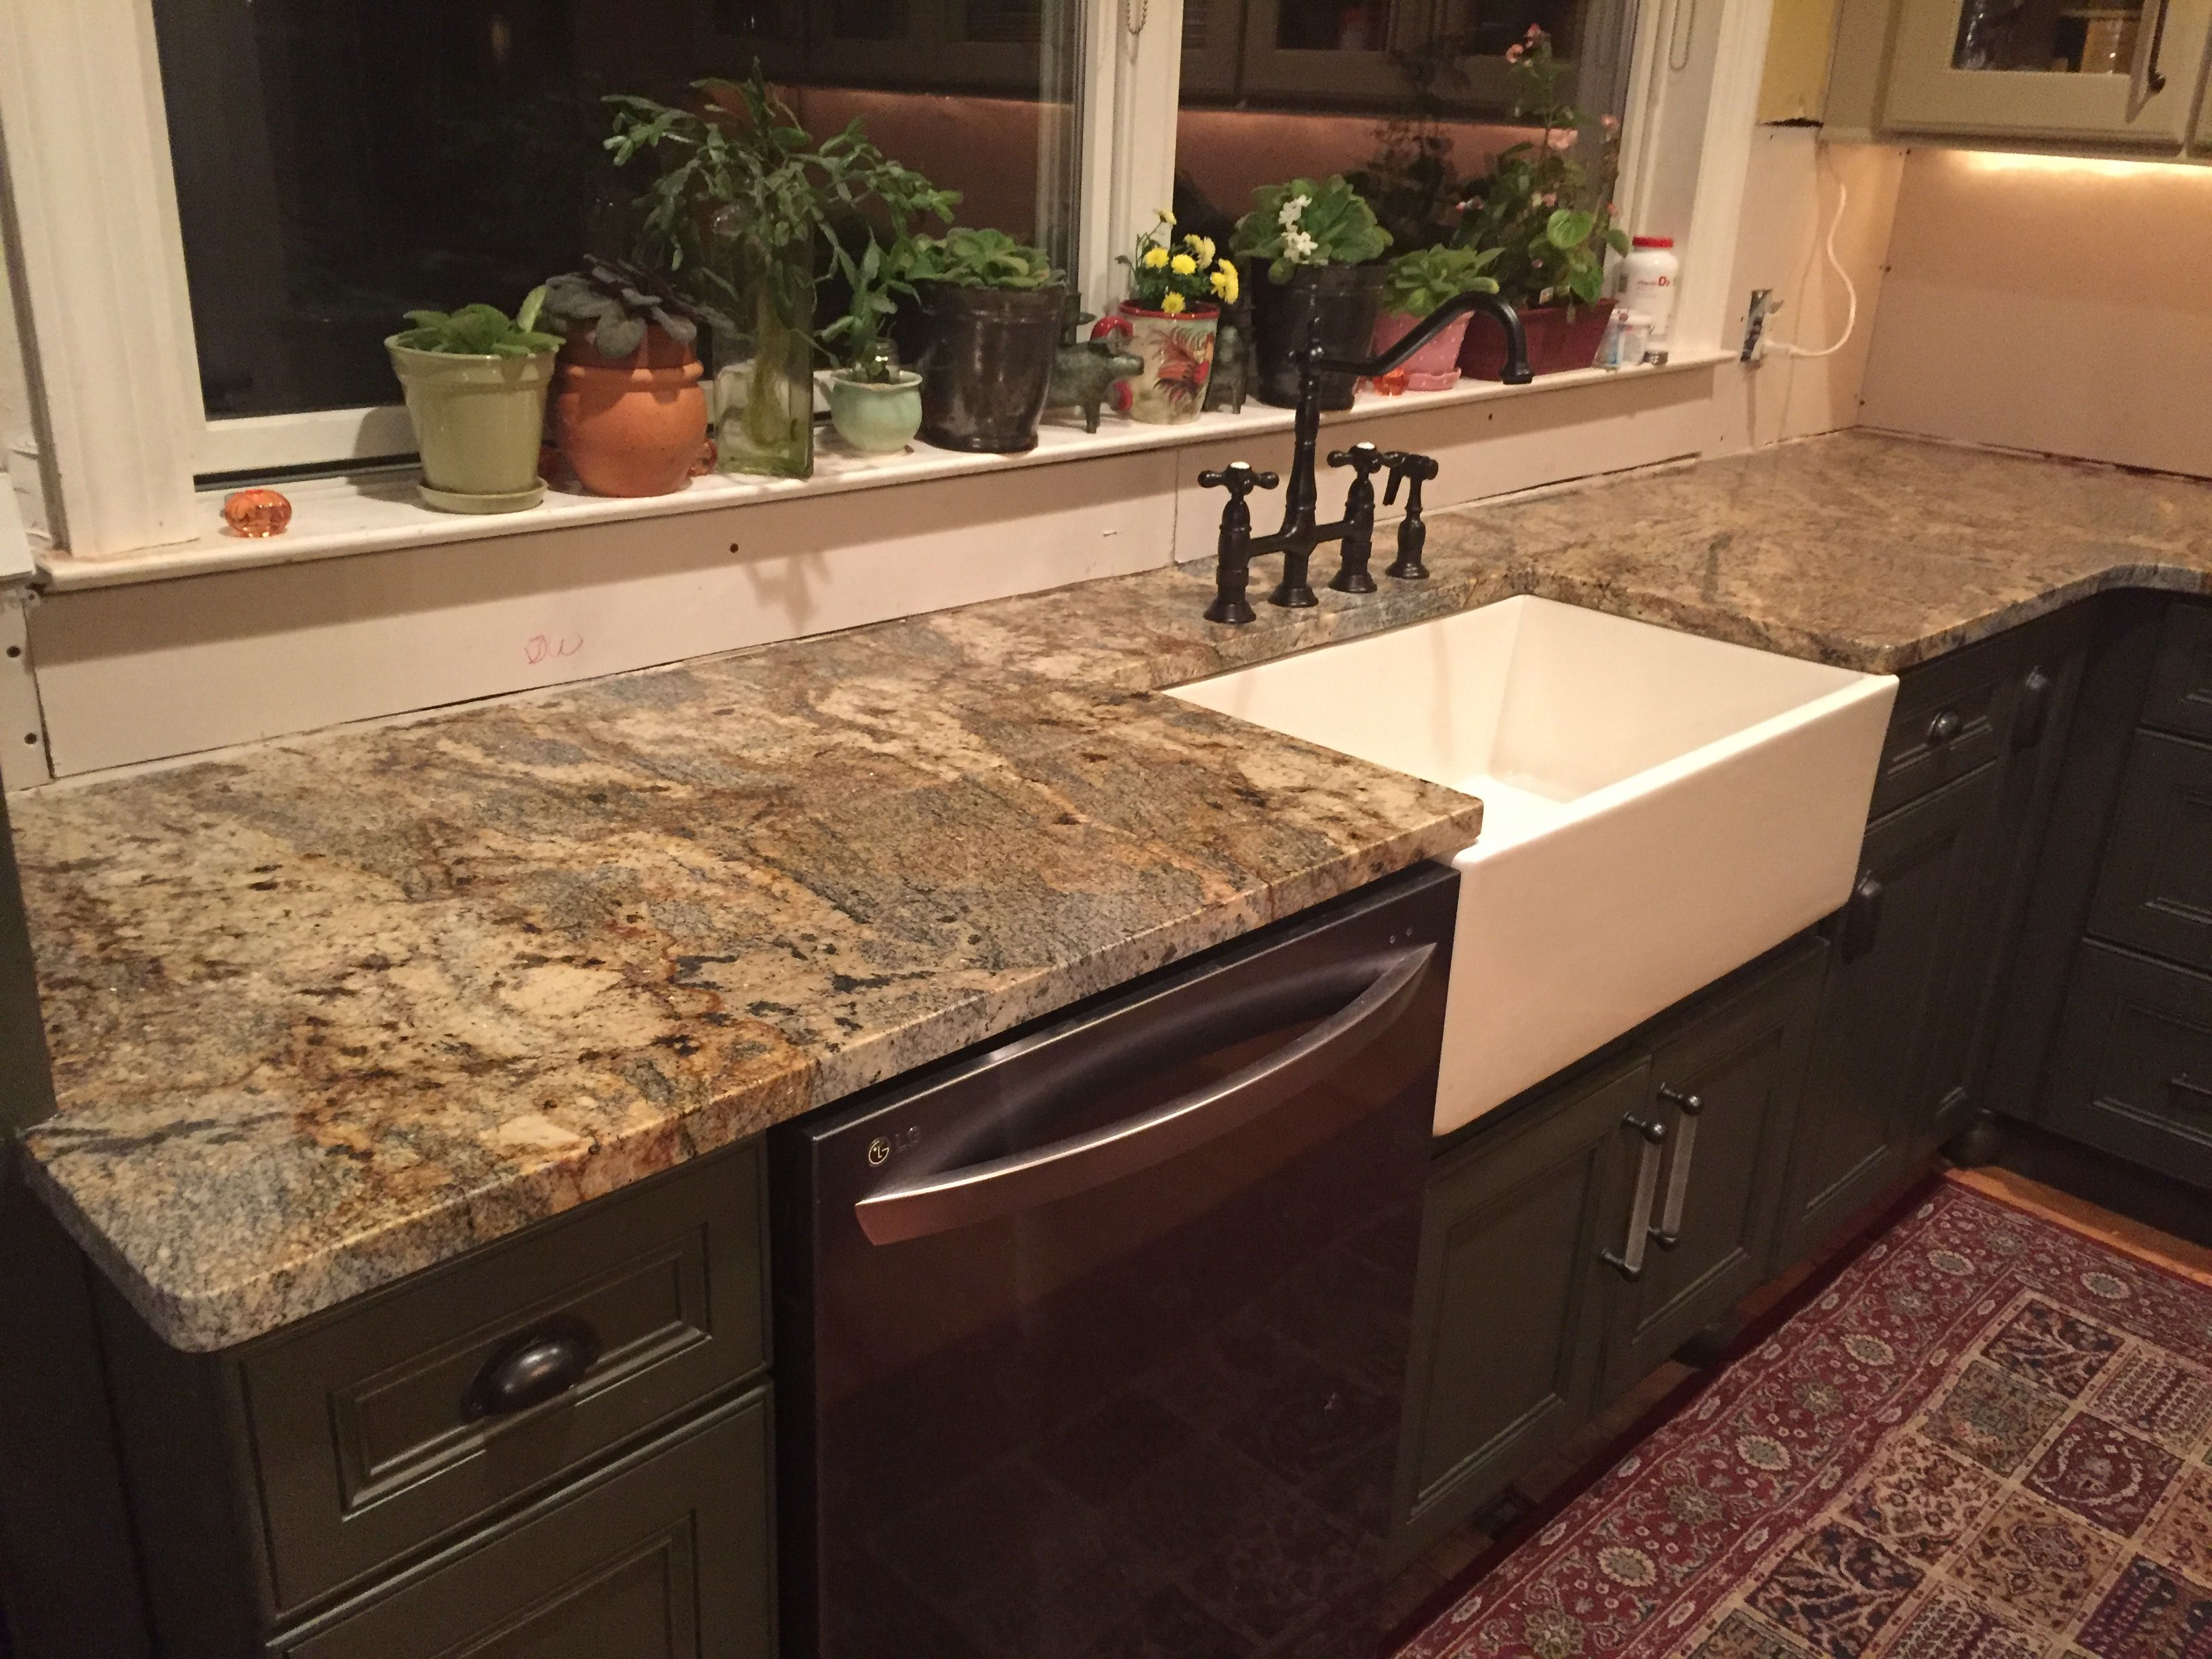 Allen And Roth Countertops New Granite Countertop Lapidus Gold Lowe 39s Sensa Lowes